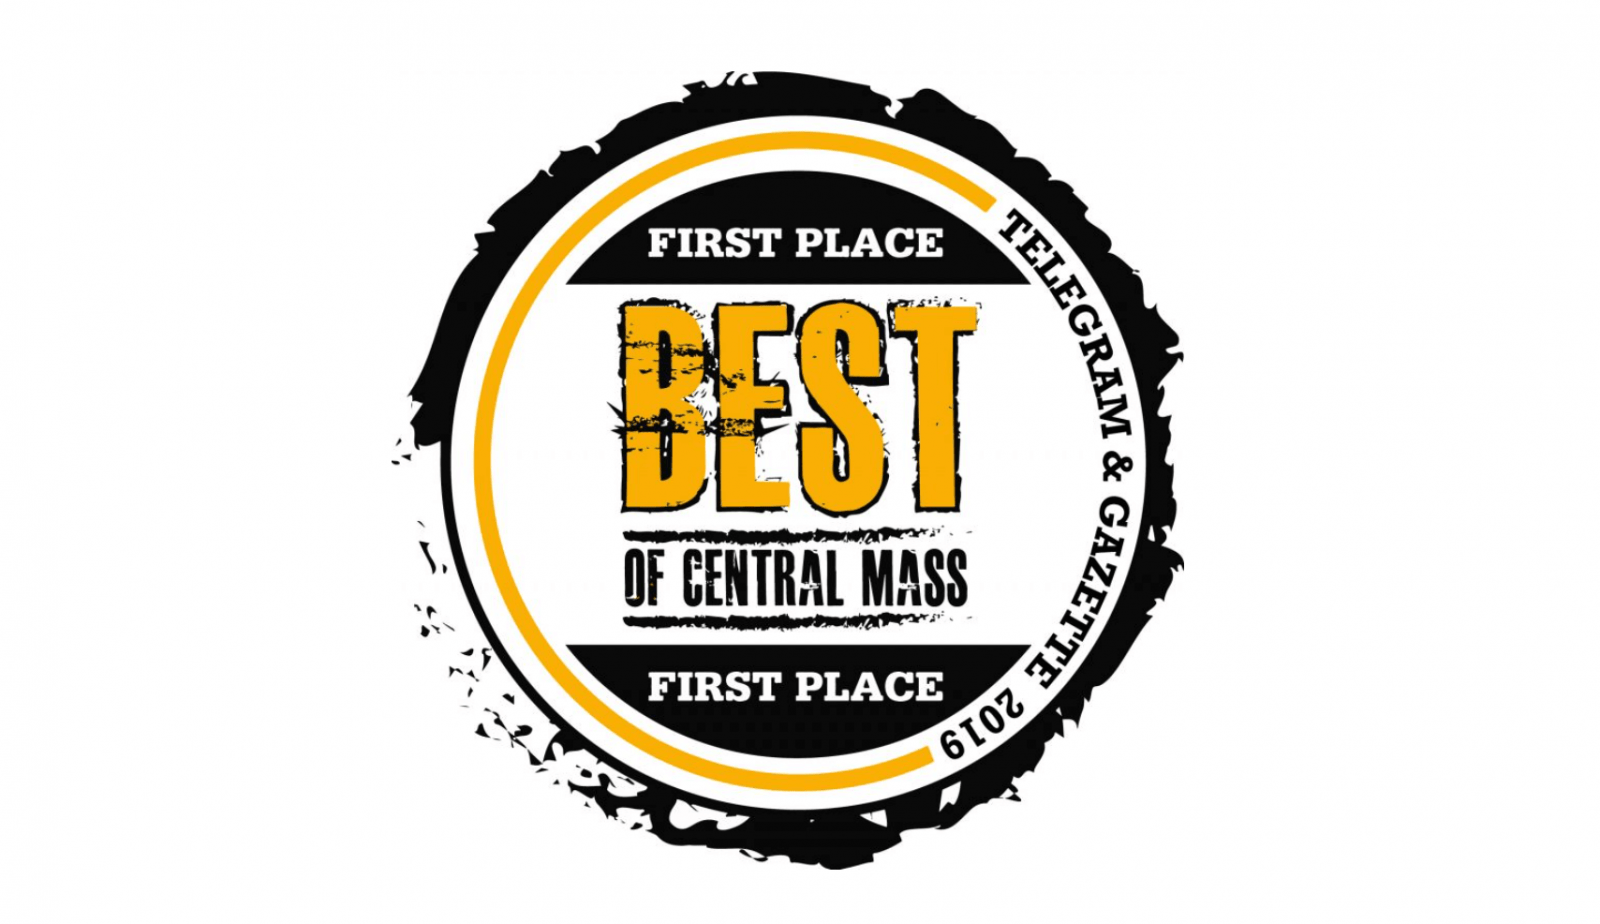 Best of Central Mass – 1st Place